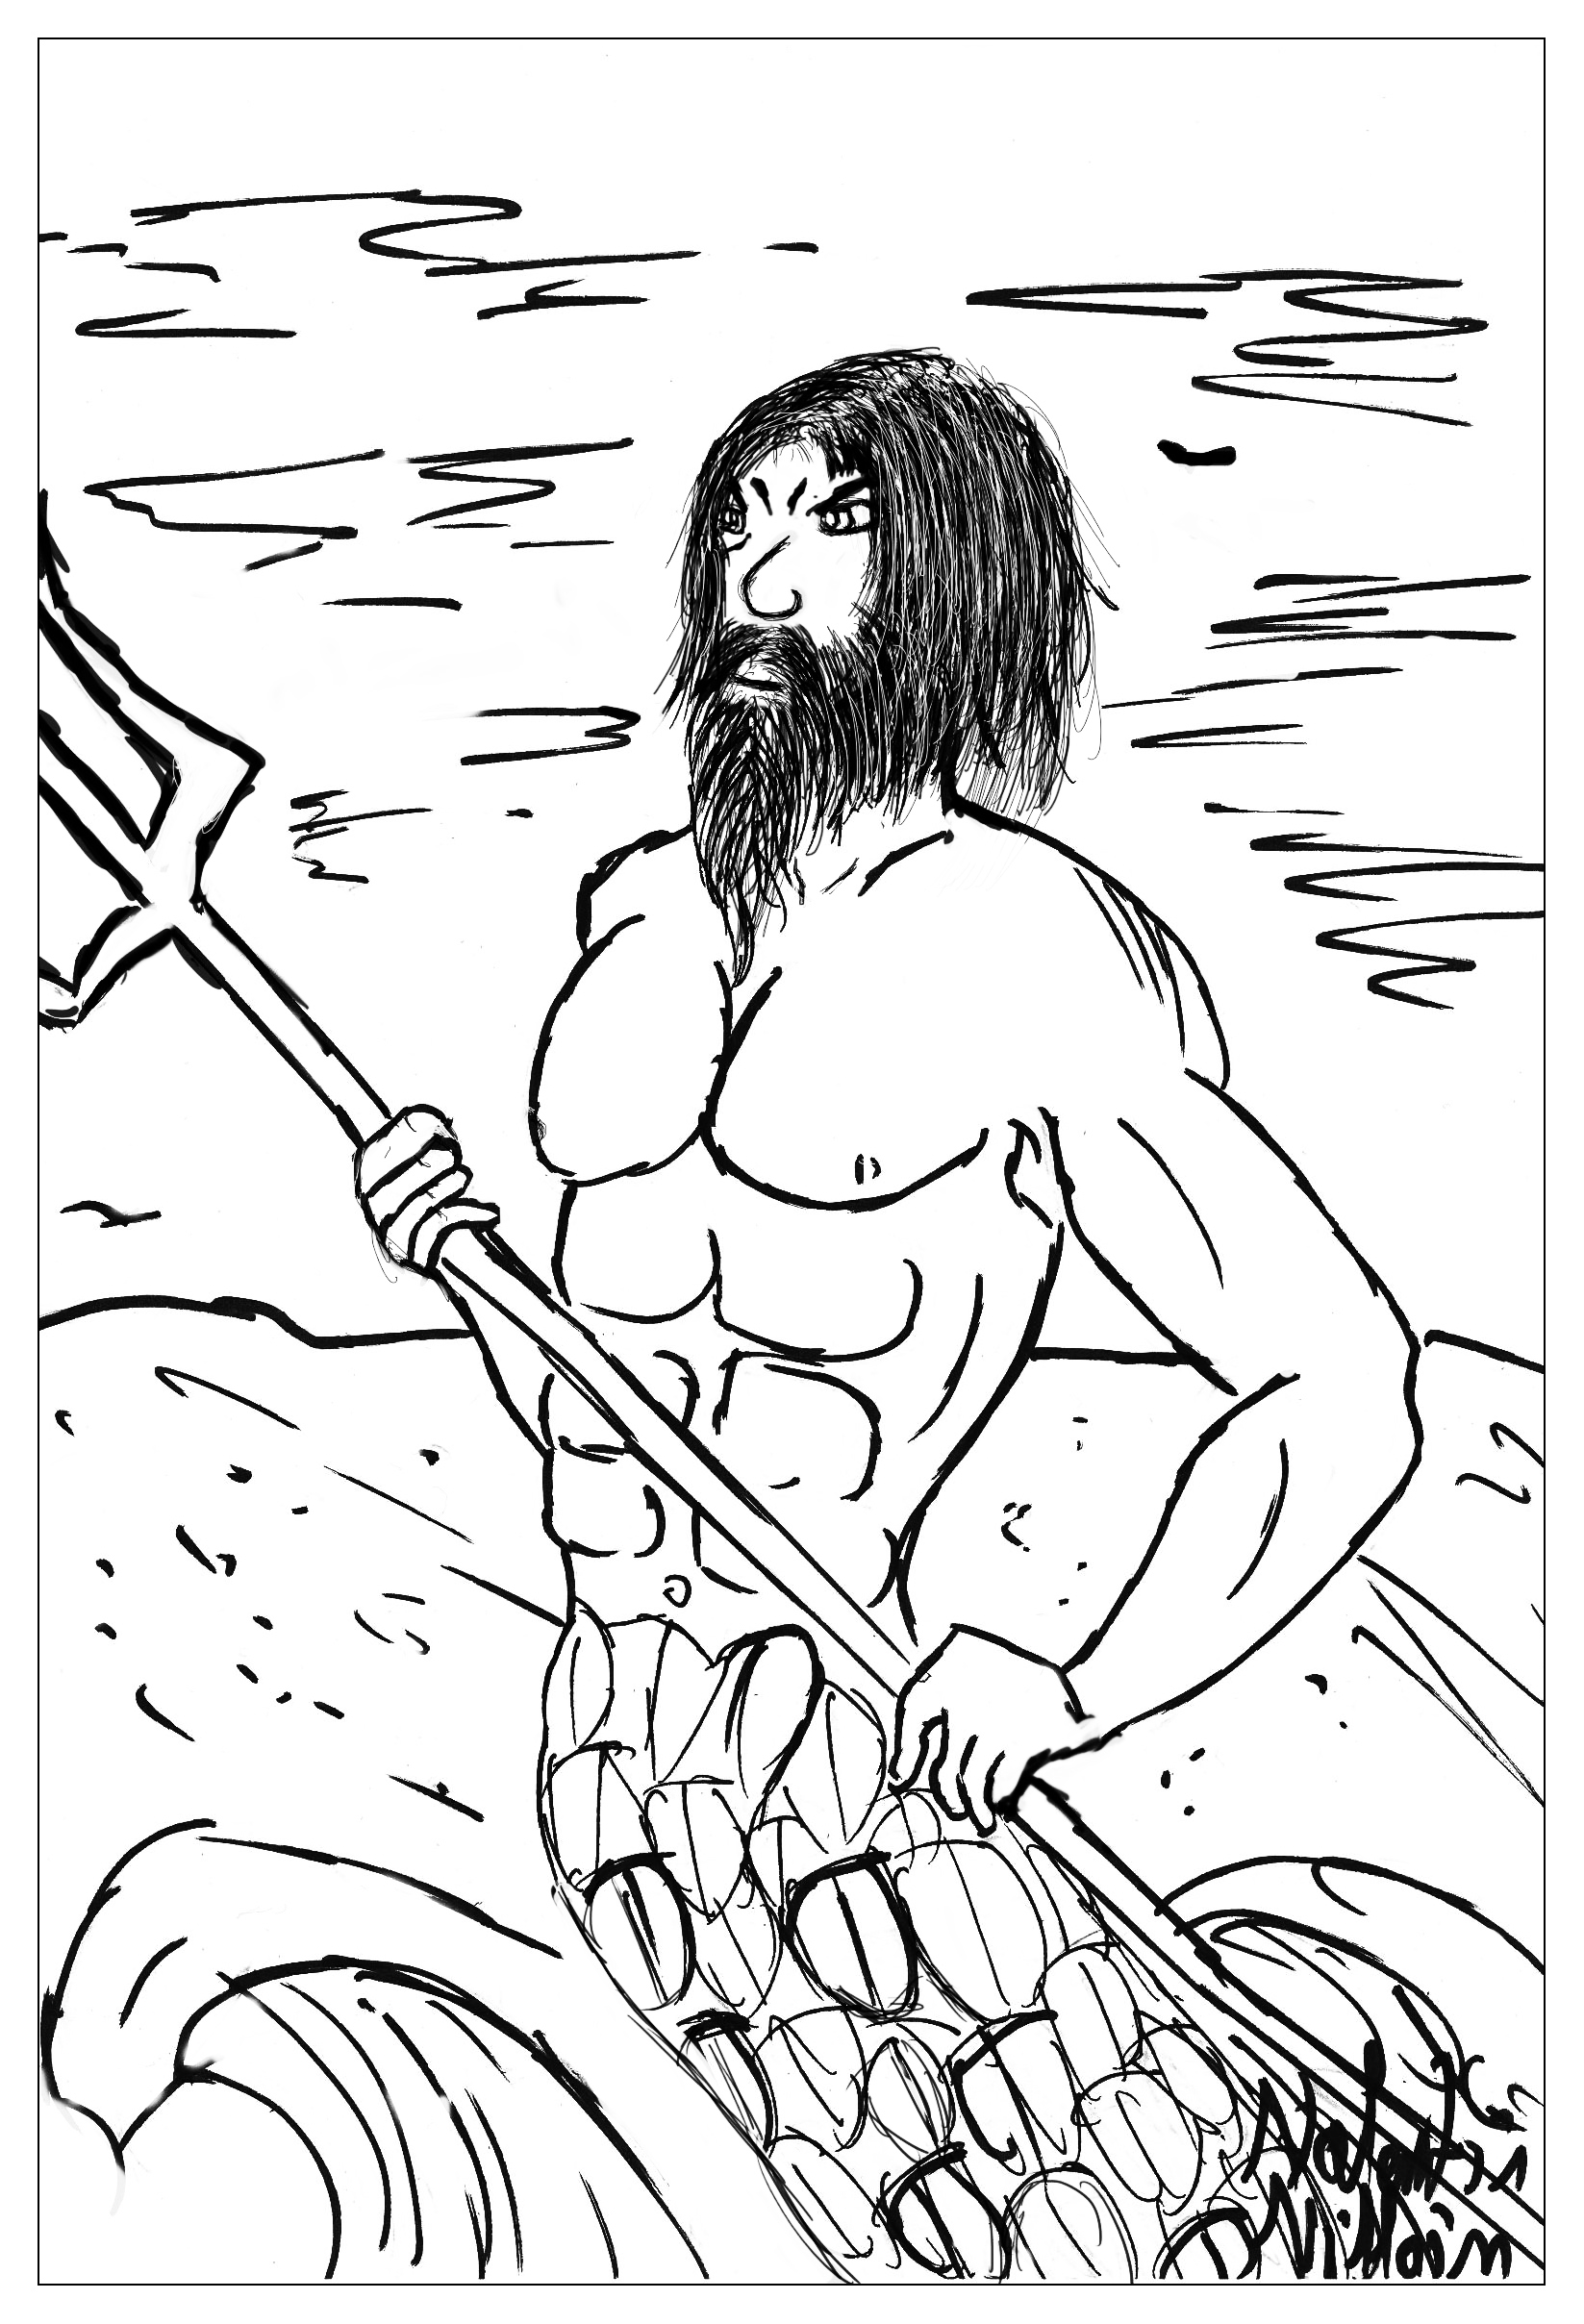 poseidon valentin myths u0026 legends coloring pages for adults